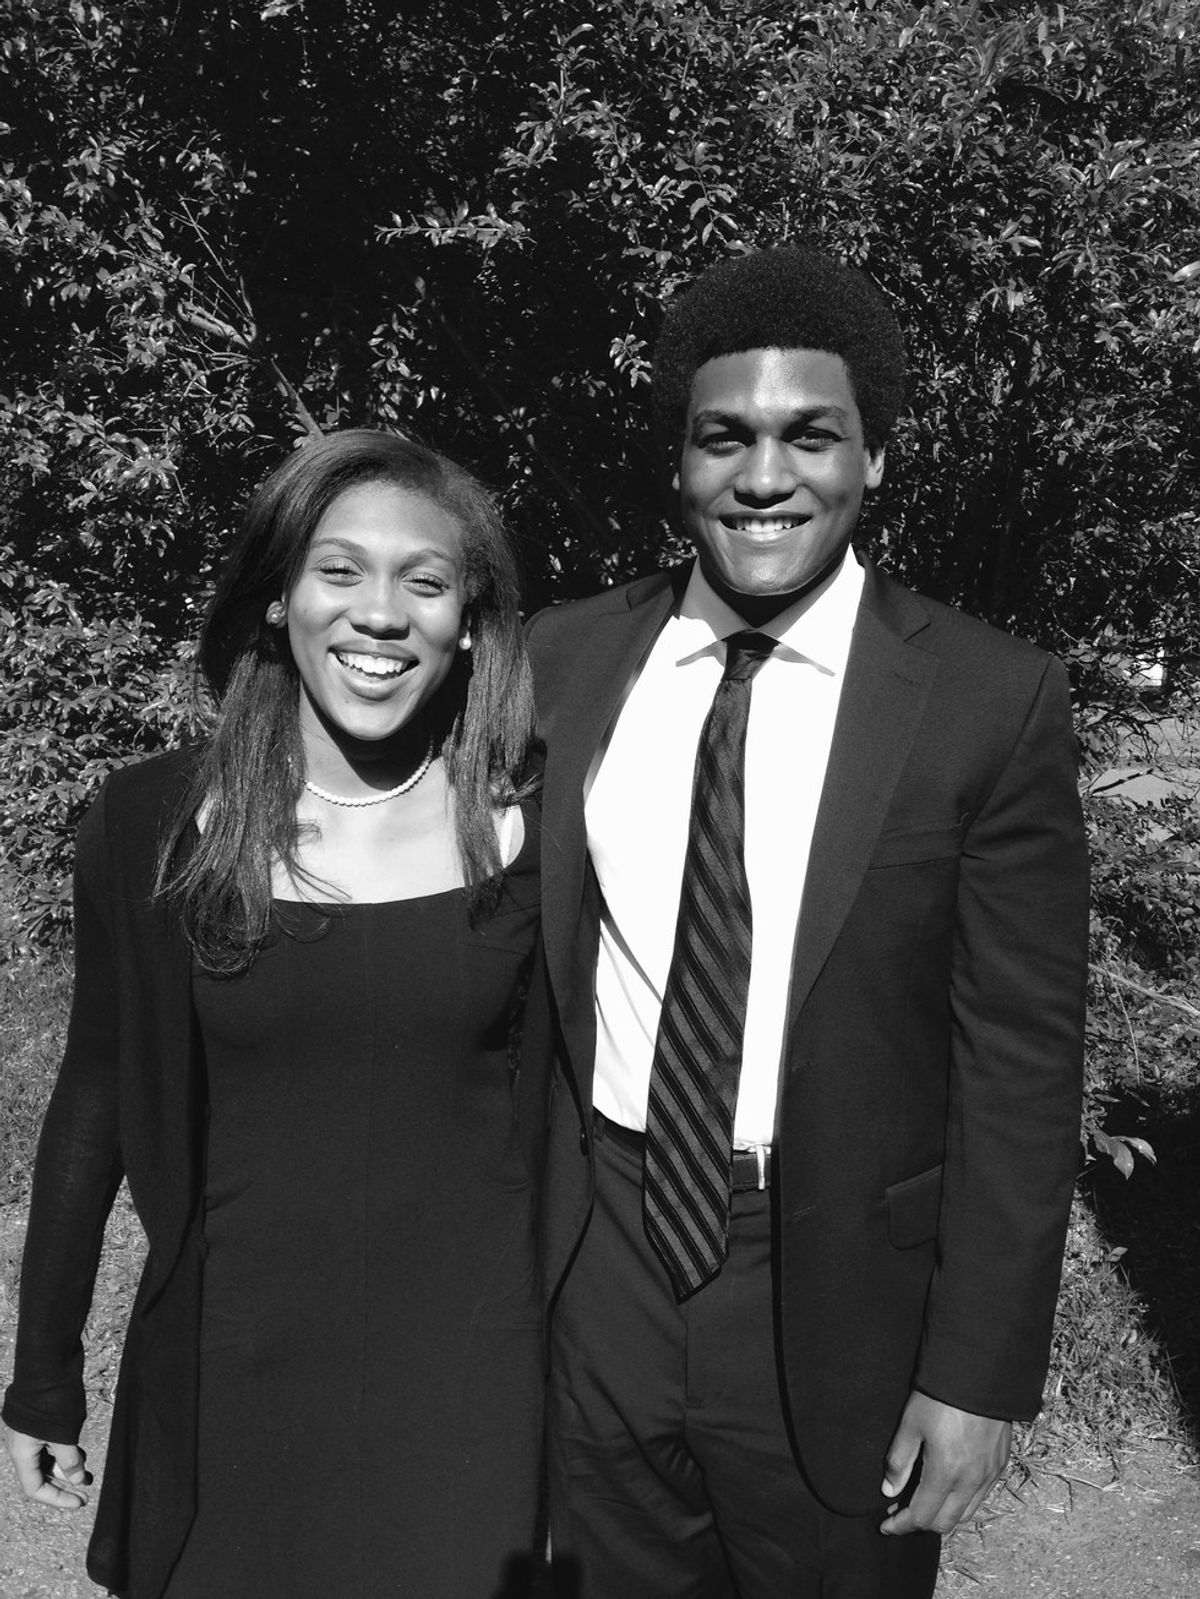 An Open Letter To My Big Brother